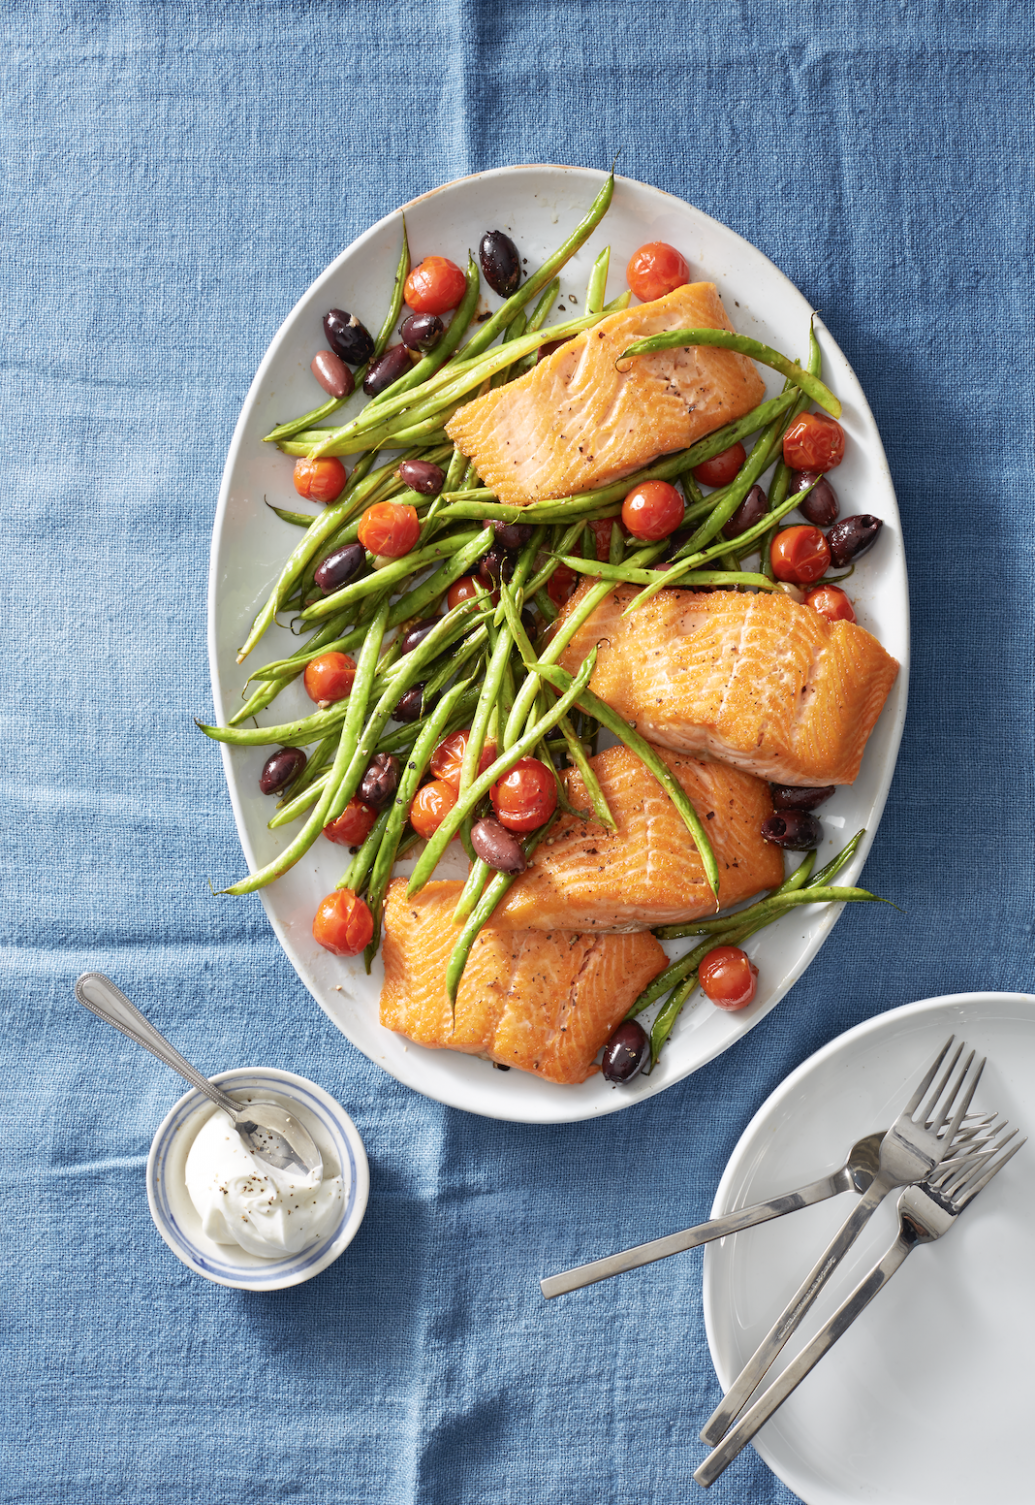 9 Easy Low-Calorie Meals - Low Cal Recipes That'll Fill You Up